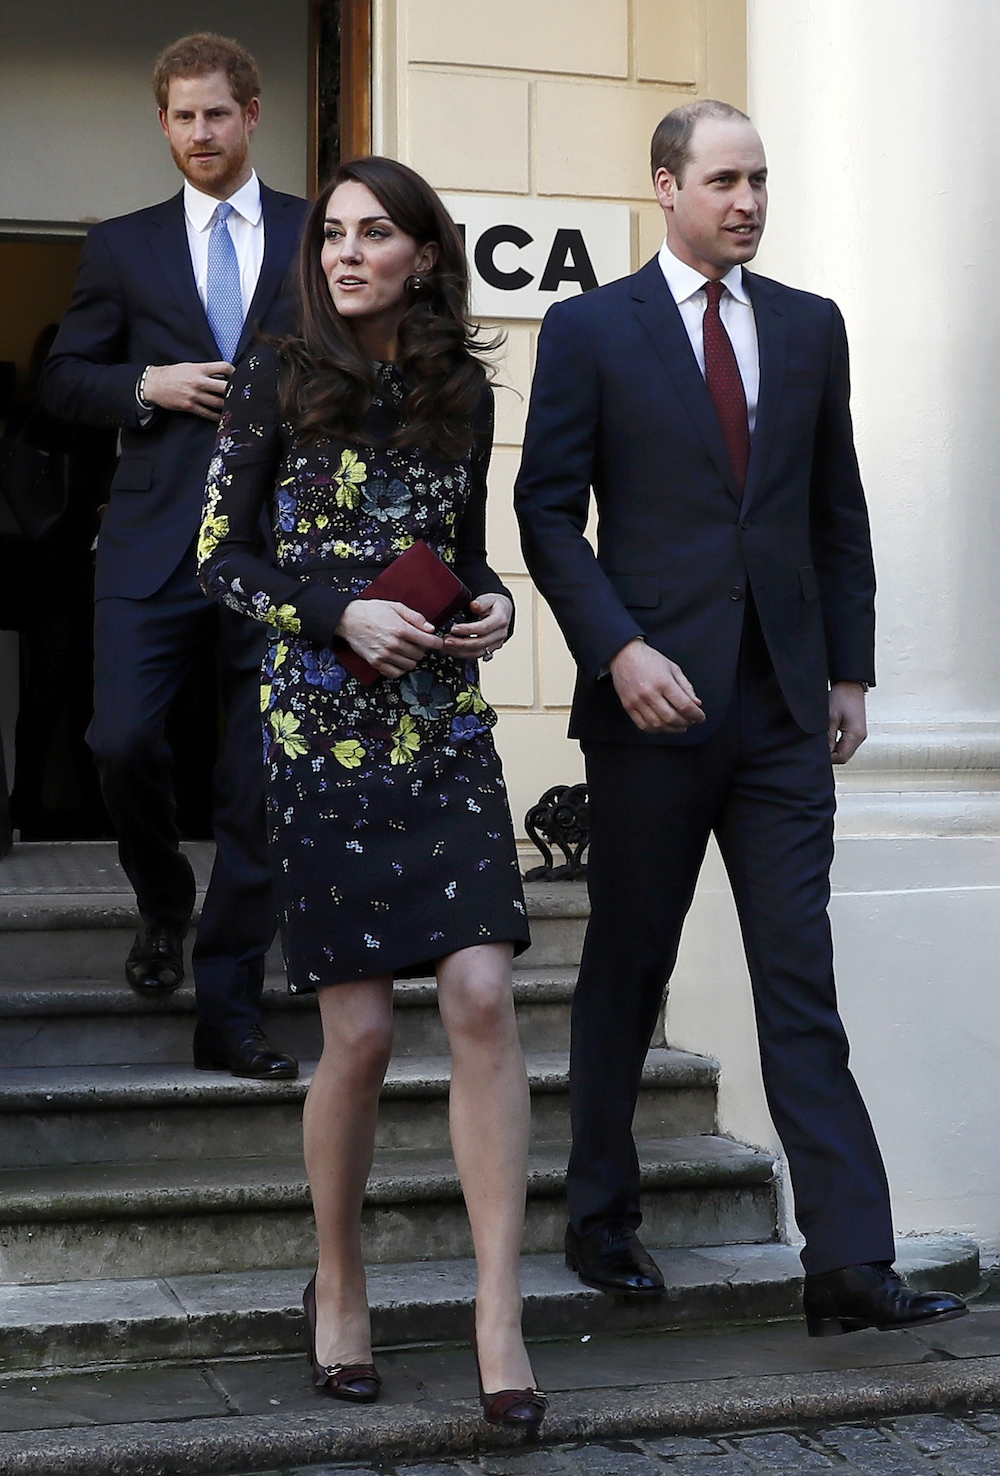 The Duchess of Cambridge wearing Erdem in 2017